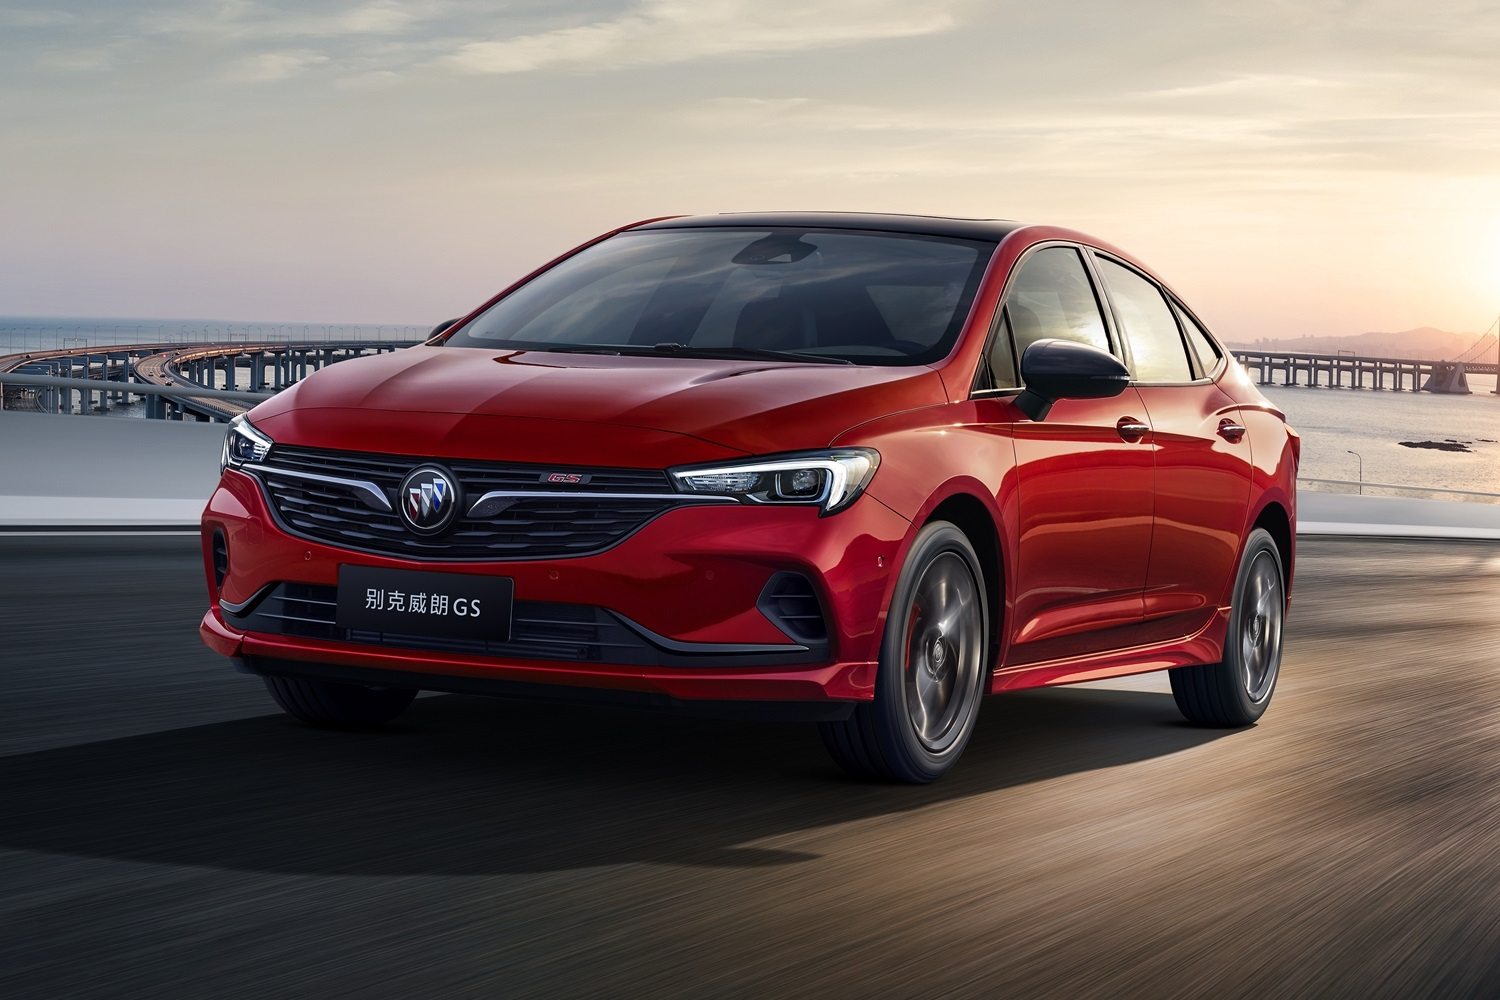 New 2021 Buick Verano Gs Launches In China | Gm Authority 2021 Buick Verano Models, Lease, Engine Size